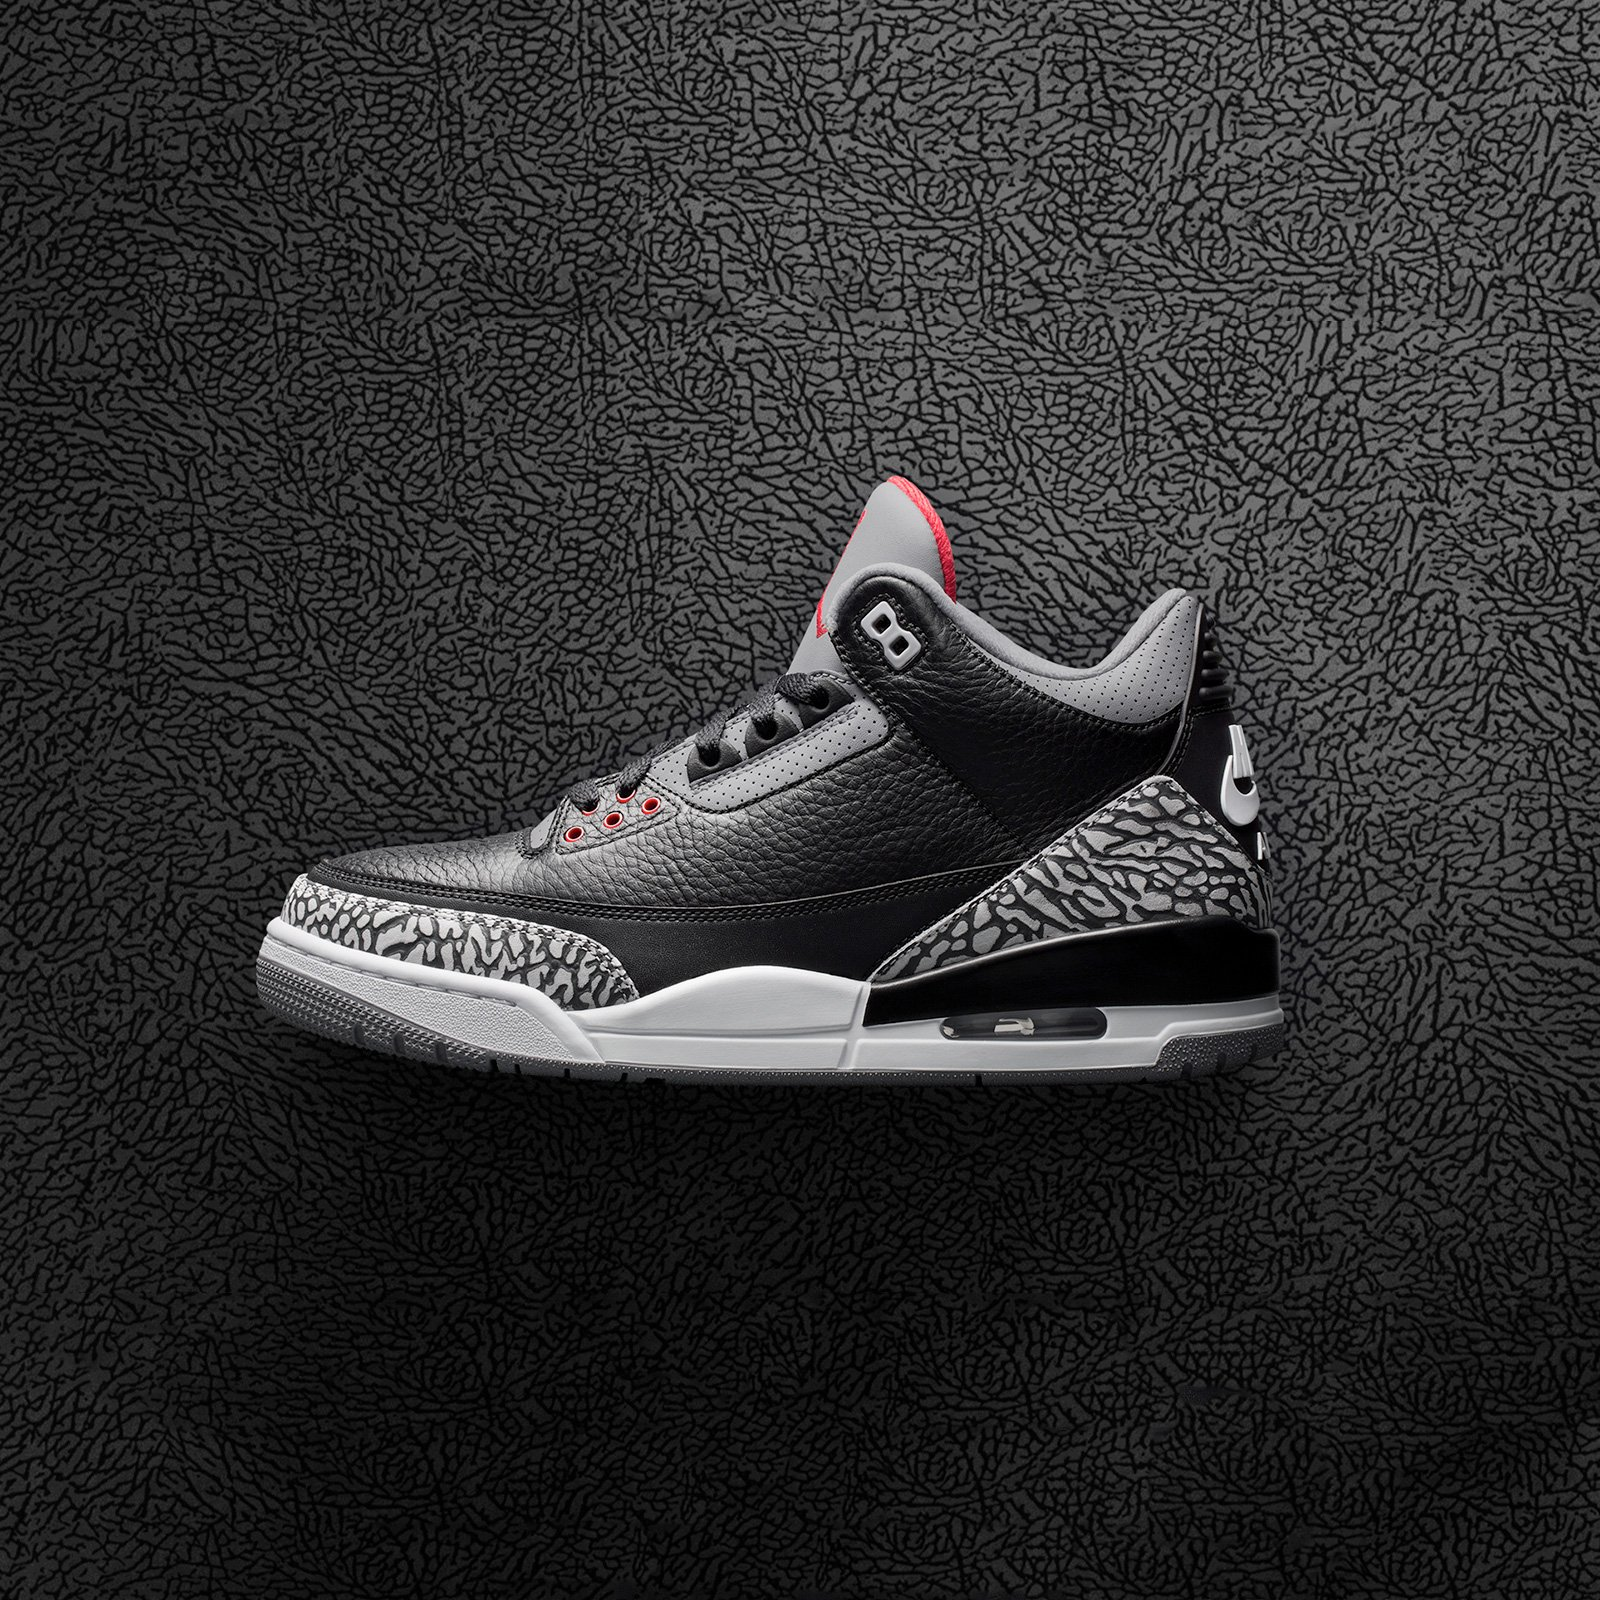 save off ce158 ceae3 Jordan Brand Air Jordan 3 Retro OG